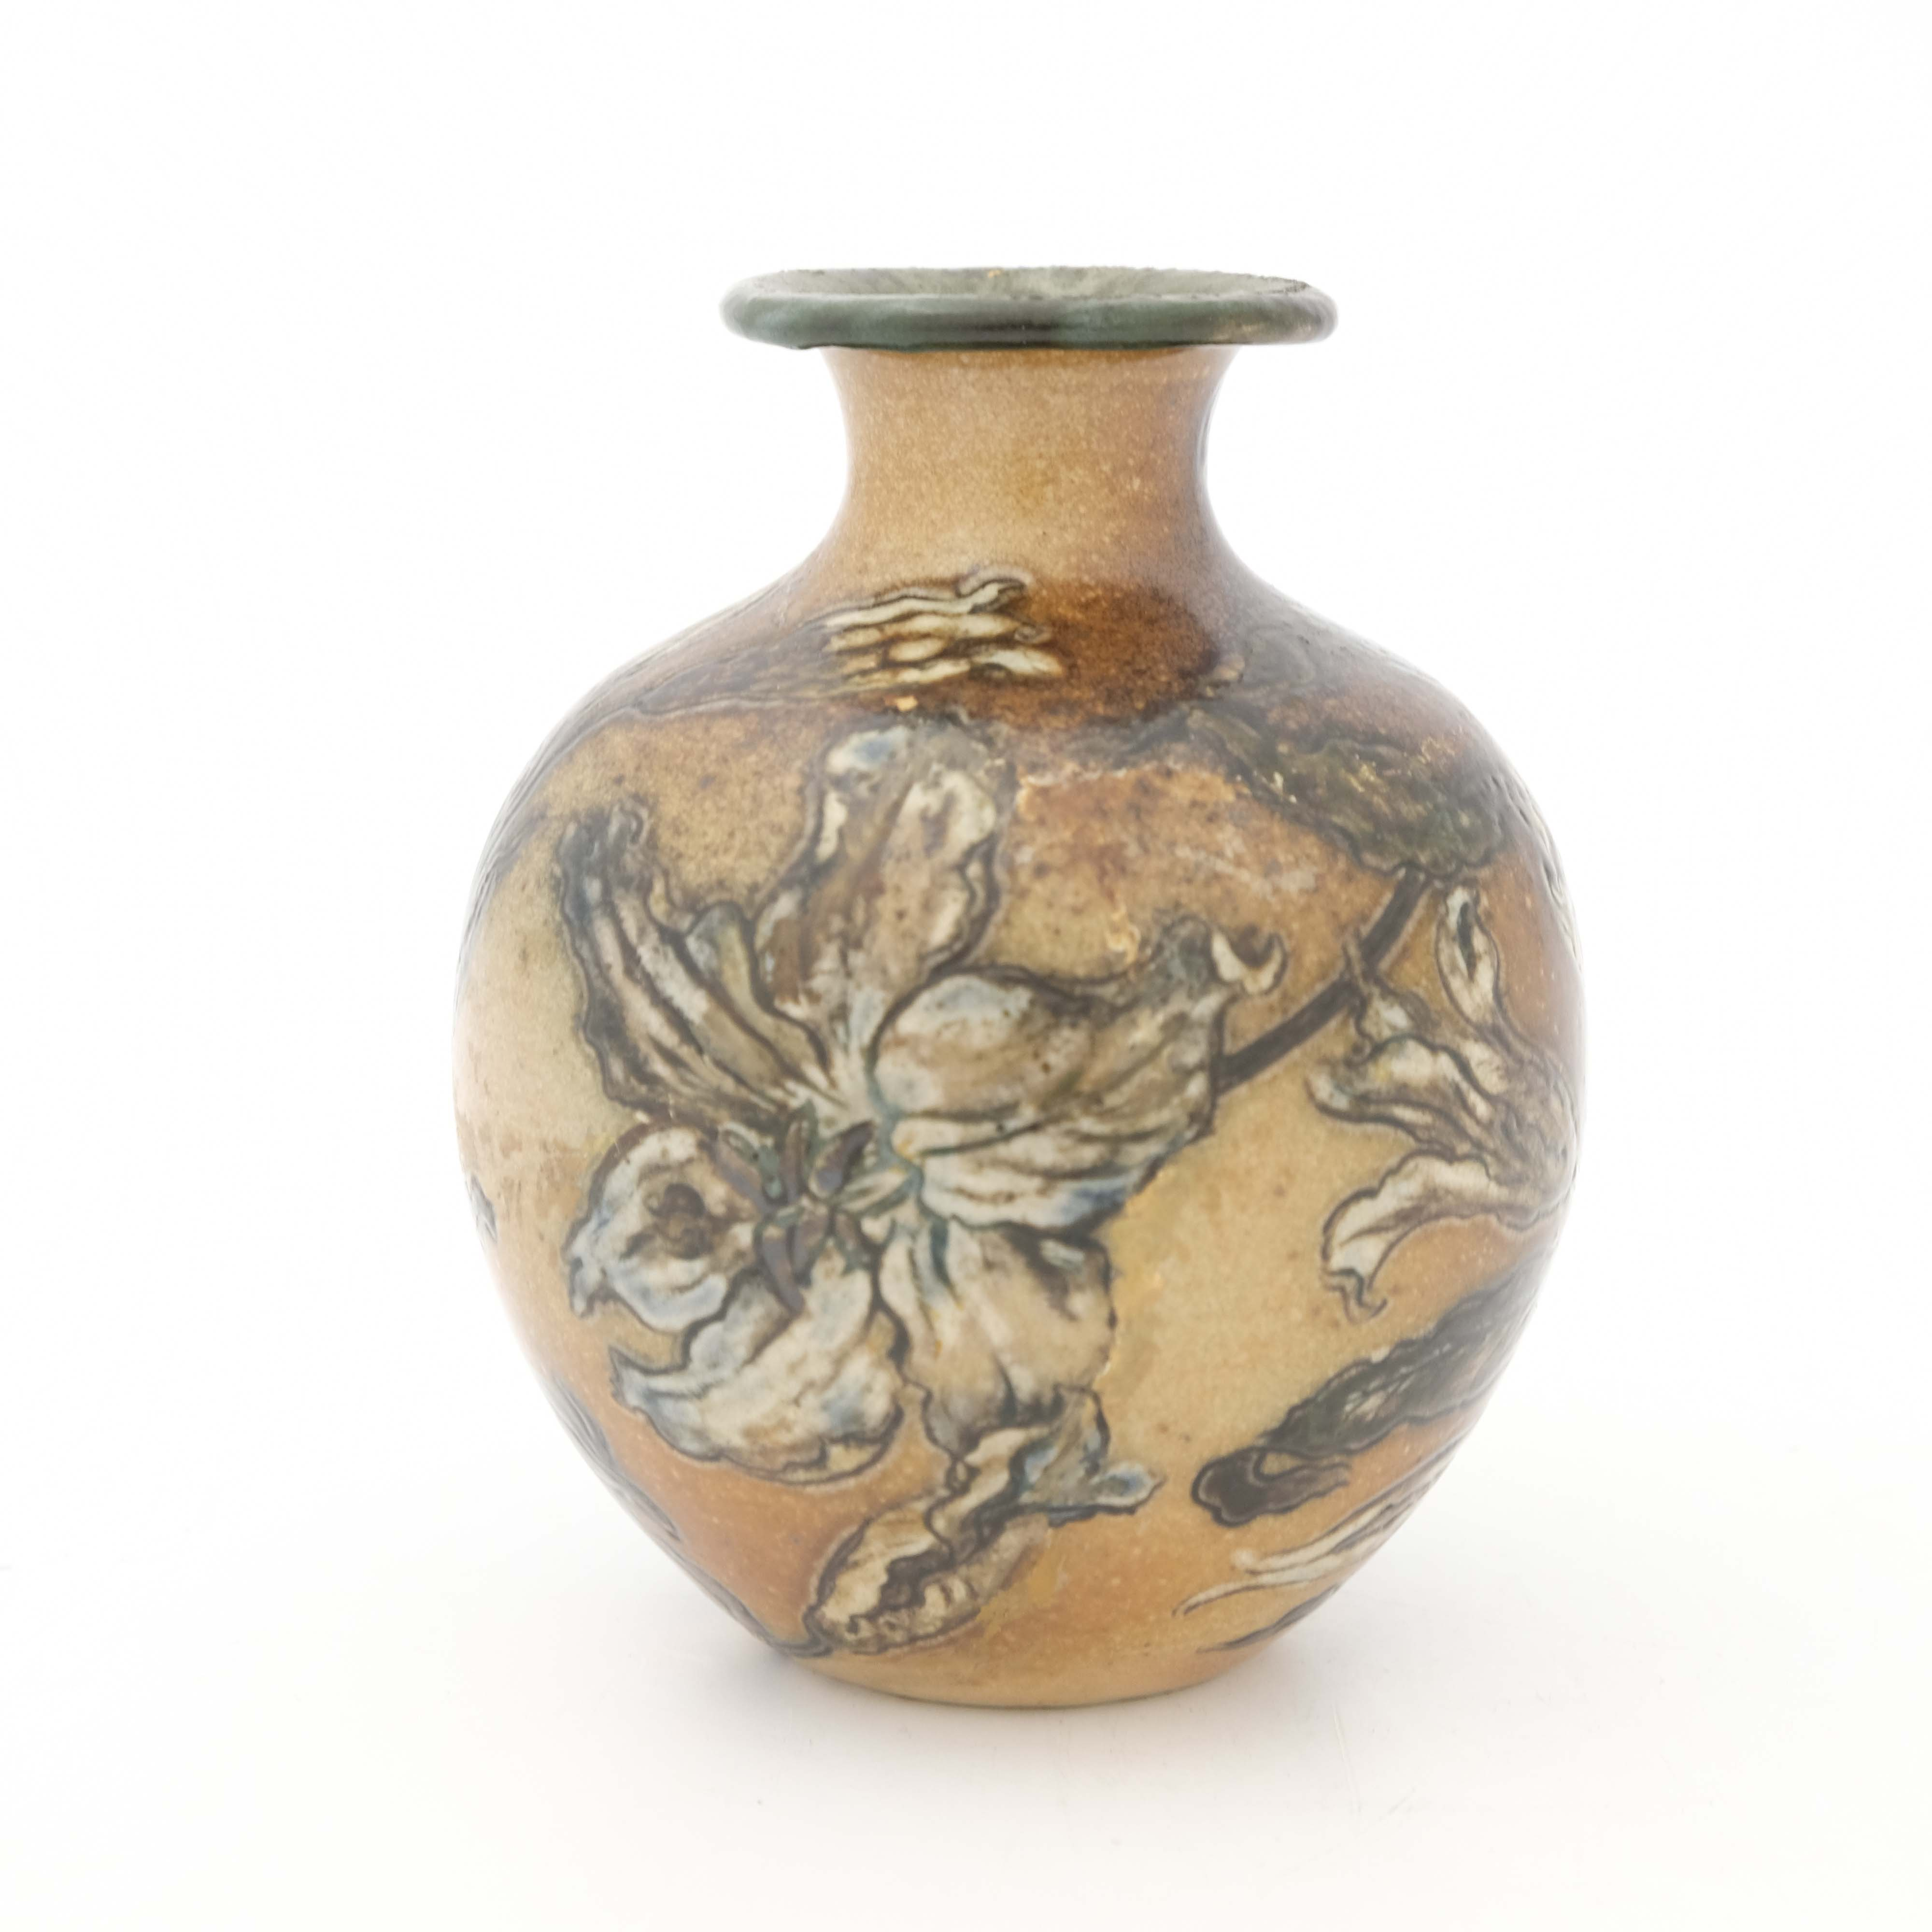 Edwin Martin for Martin Brothers, a stoneware vase - Image 2 of 5